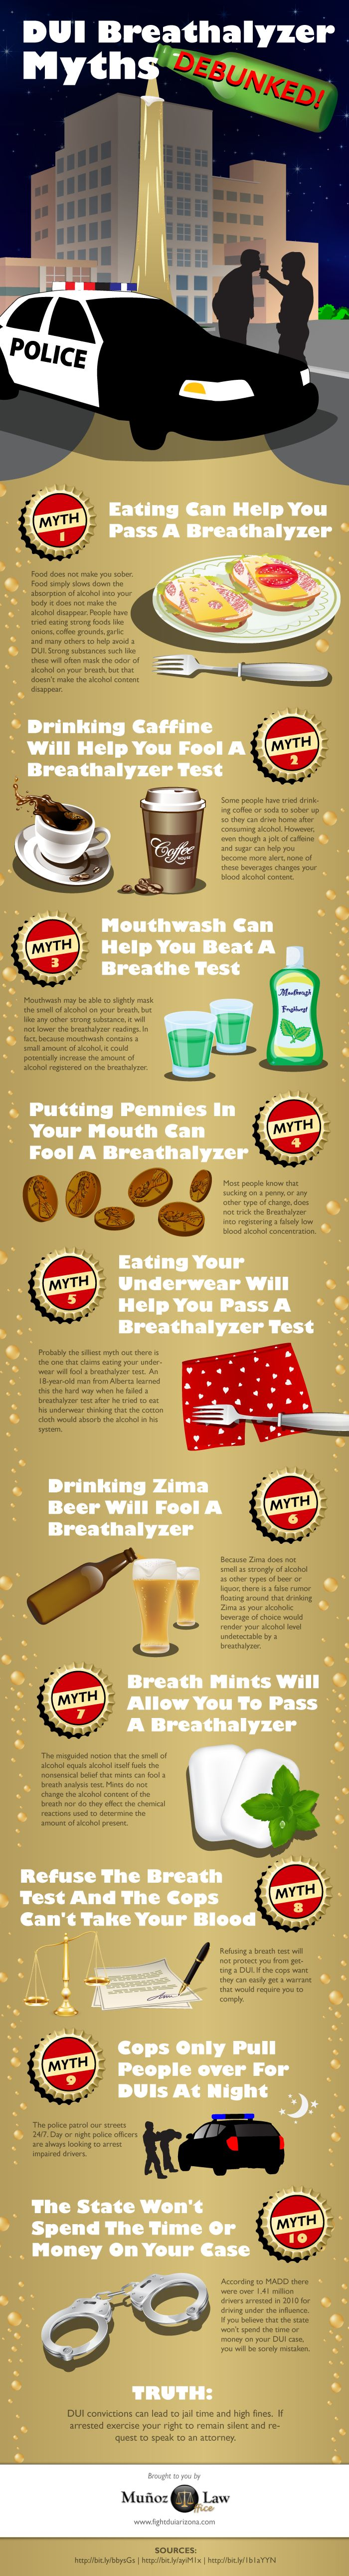 DUI Breathalyzer myths : Myth Buster Infographic debunks myths of Breathalyzer test of Driving Under Influence.